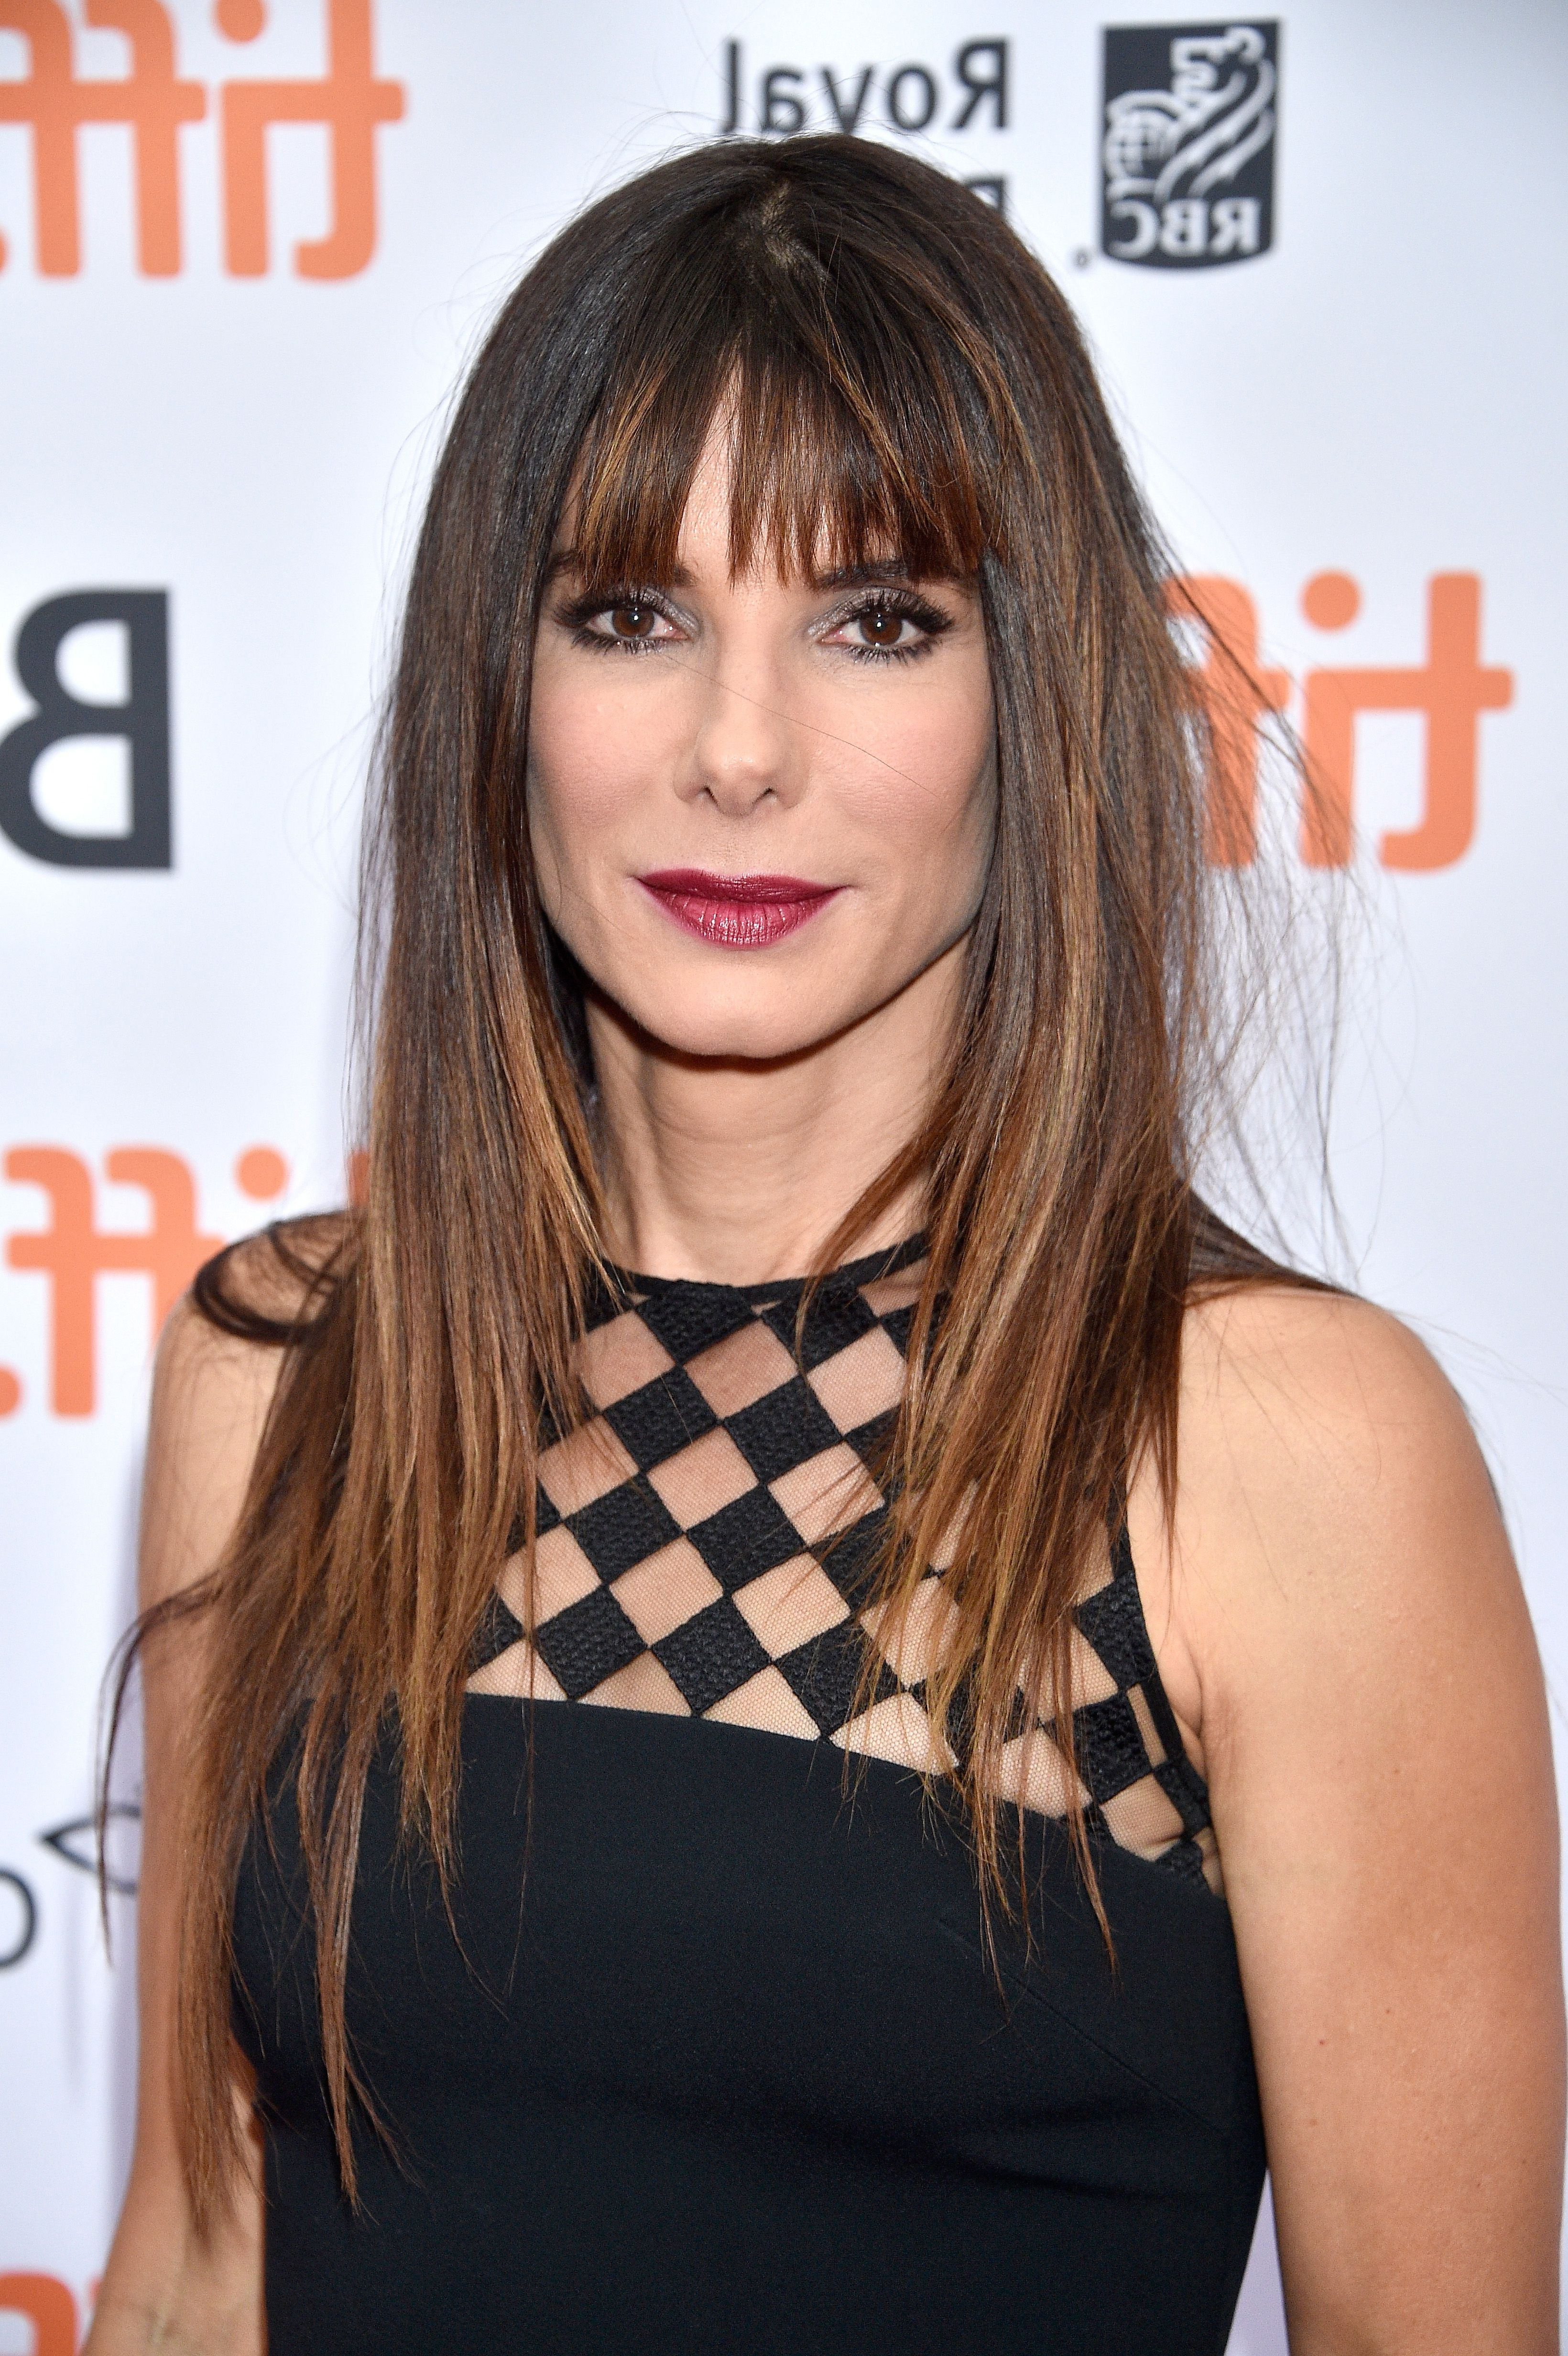 40 Best Layered Haircuts, Hairstyles & Trends For 2018 Pertaining To Recent Layered Medium Hairstyles With Bangs (View 7 of 20)